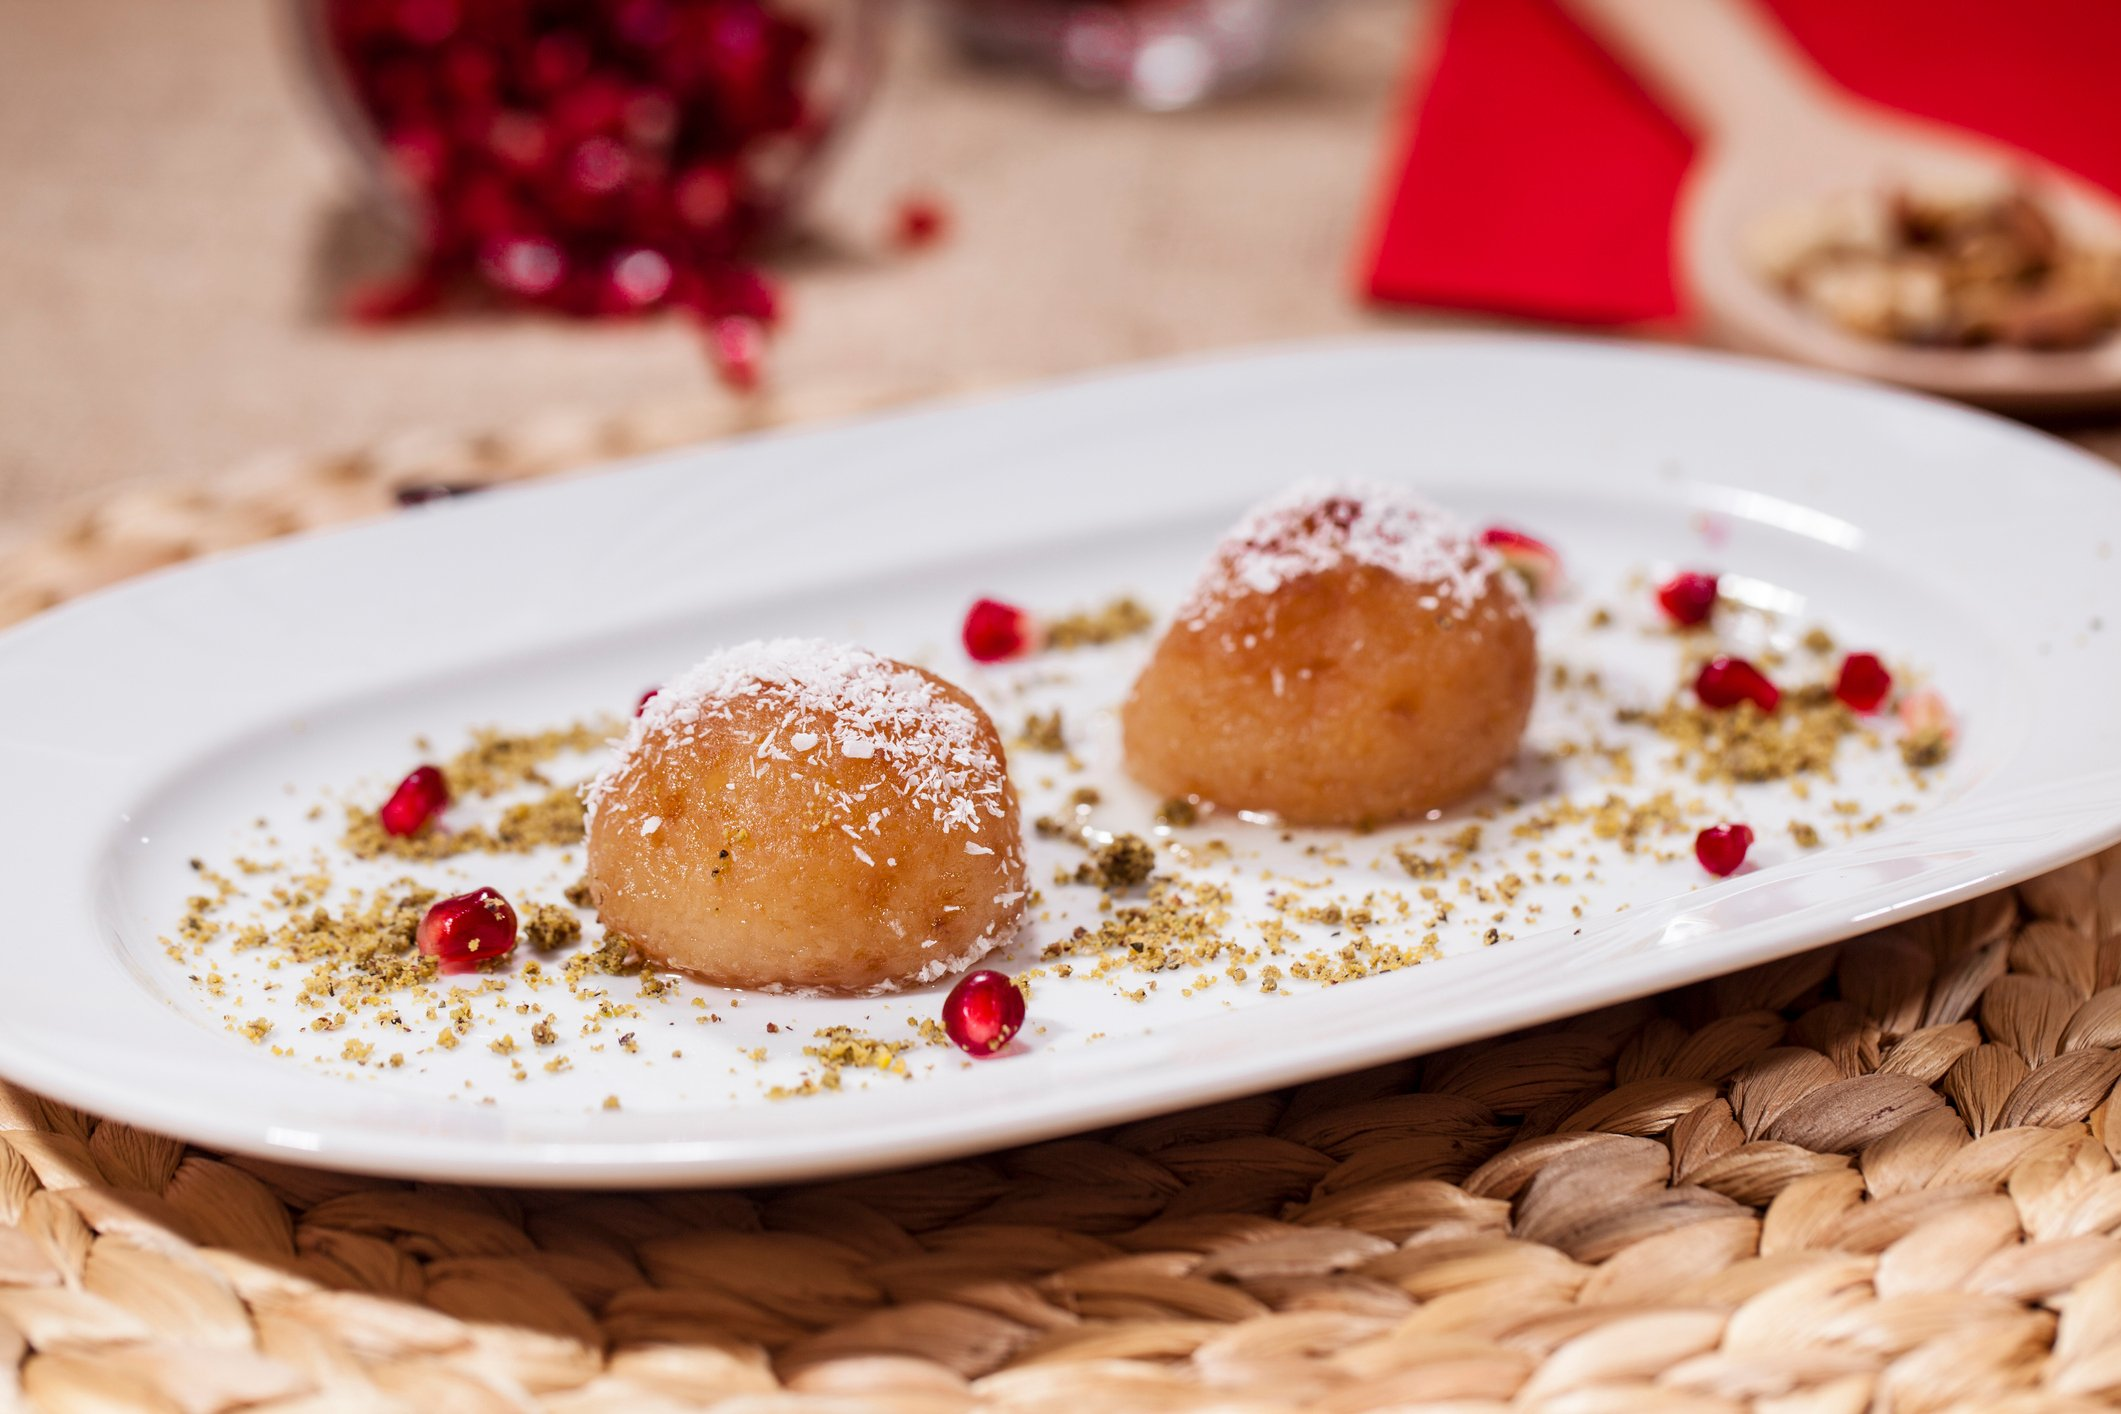 Kemalpaşa is a delicious Turkish dessert named after the place of its origin in Bursa. (iStock Photo)